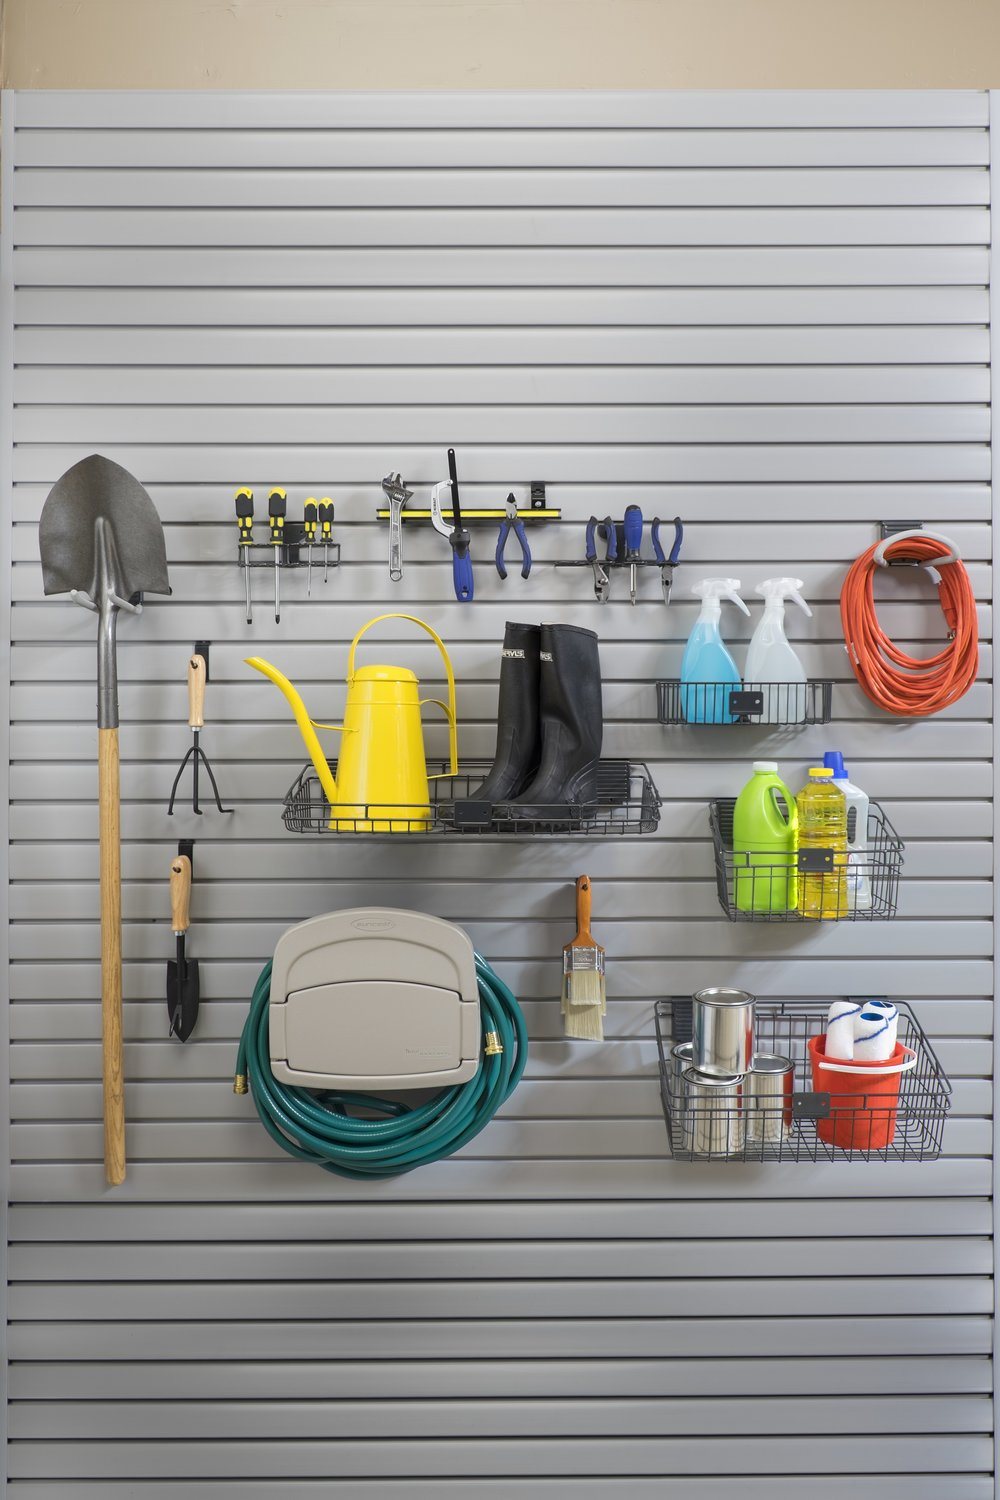 The slatwall provides clean, accessible storage for garden sheds and garage organization.  Call Closets of Tulsa  today for a FREE consultation and 3-D garage design:  918.609.0214